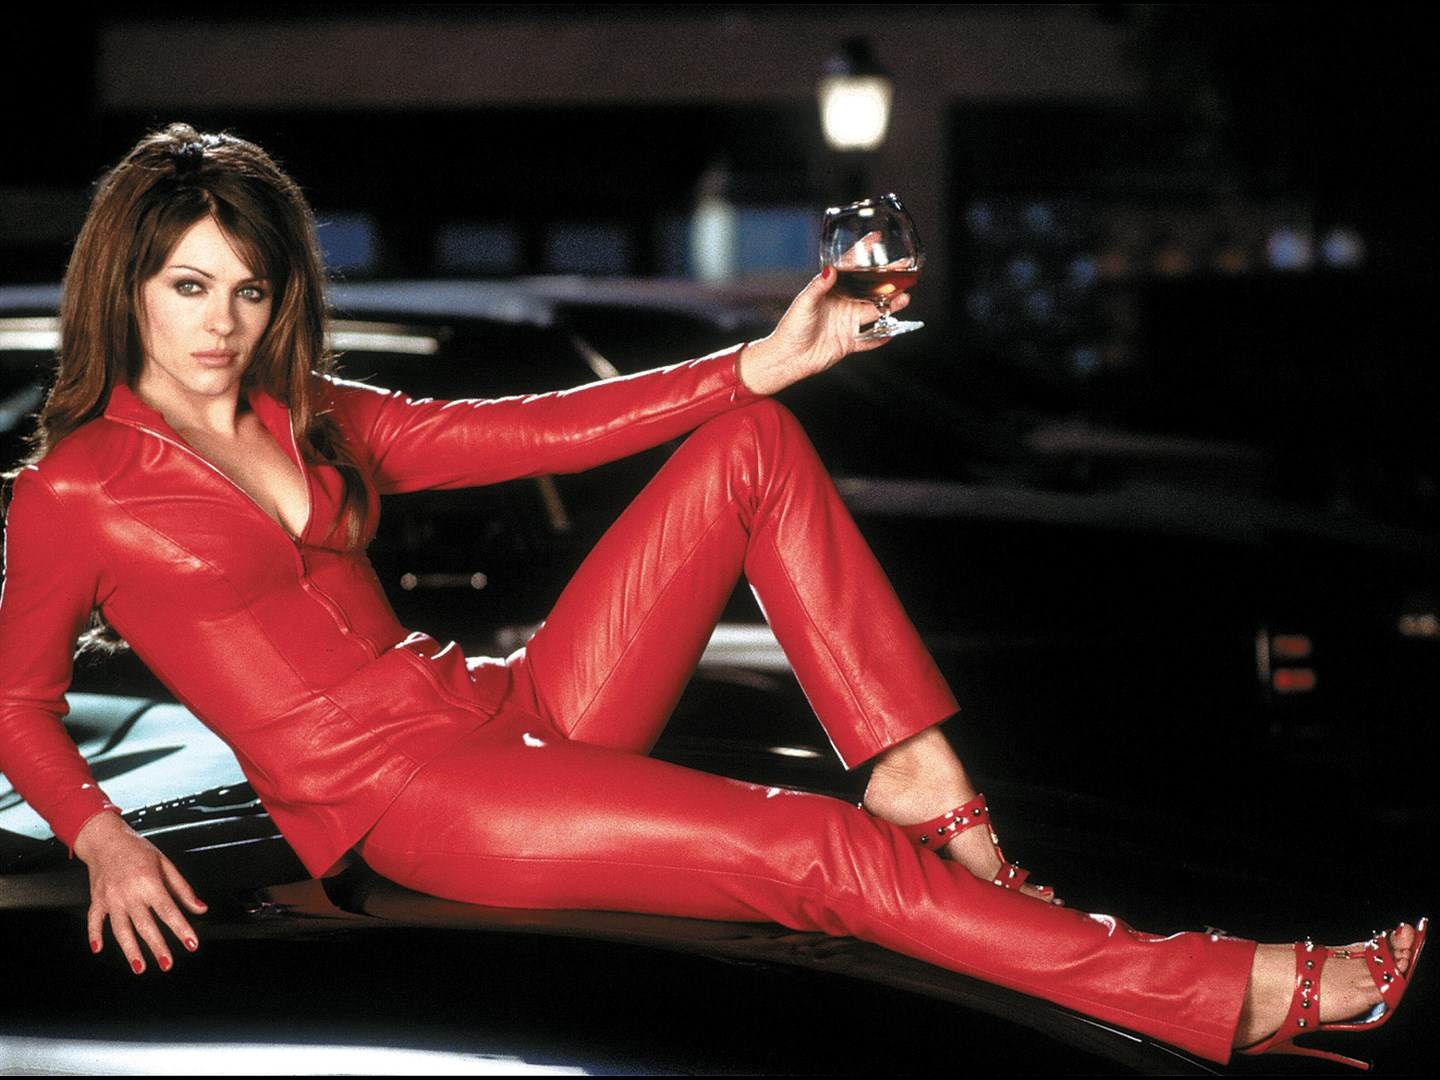 Elizabeth Hurley as The Devil in Bedazzled (2000)